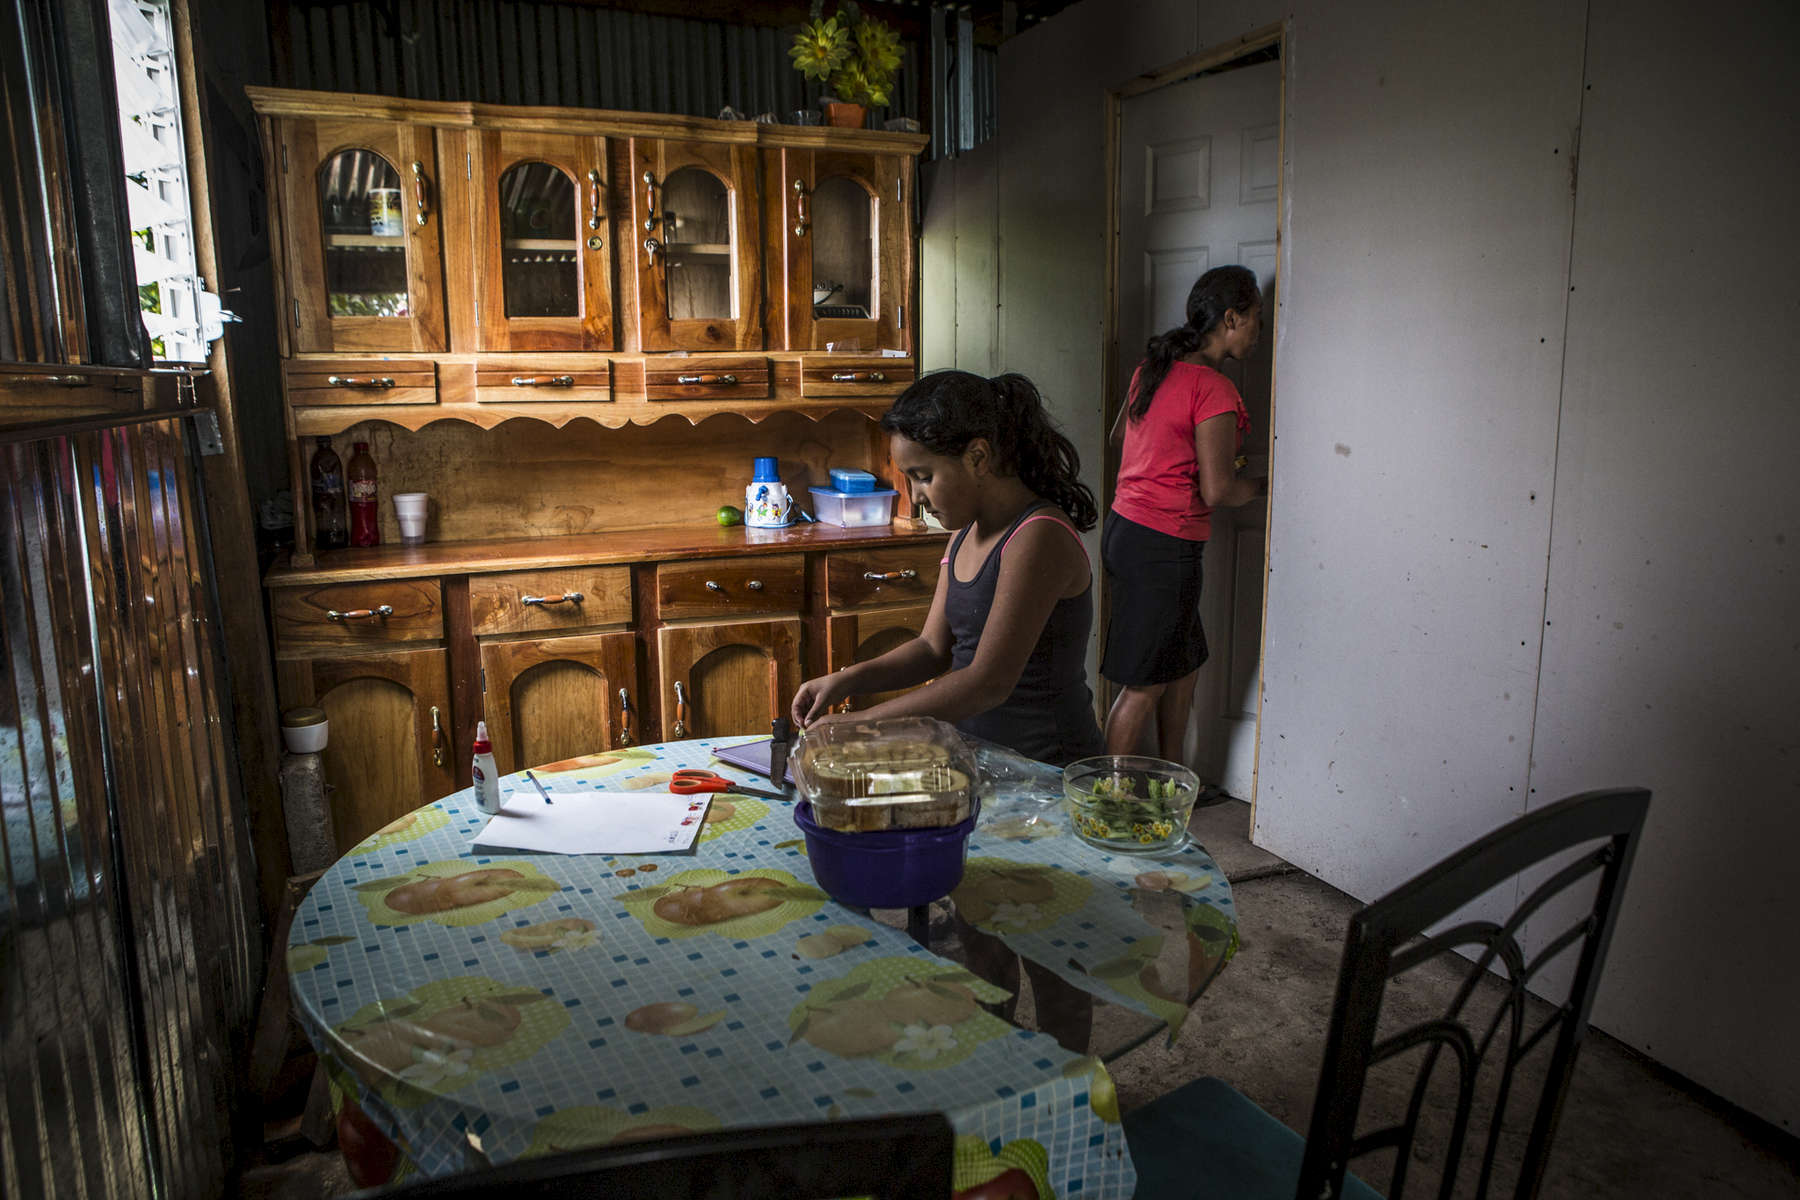 Nejapa, El Salvador- Priscilla Perez, 32, with her niece Aixa Ortiz, 9, make lunch at their home in San Jeronimo Los Planes, Nejapa, El Salvador on Friday, June 22, 2018. Water is collected during the rainy season in the communal tank and sold for 10 cents a jug during the dry season, money raised is used to fund water trucks once the tank runs dry (usually the tank only lasts for two months into the dry season). Unfortunately the roof was lost during a recent hurricane and very little water has been collected since, worrying the Perez family. Nejapa is not only home to a number of bottling plants including Coca Cola and Lactolac, it also lies above one of El Salvador's largest aquifers, feeding neighboring communities and much of San Salvador.The San Antonio River, once a main source of water for Nejapa, has been contaminated by the waste produced by industrial bottling plants since their arrival in 1996. Bio filtration systems were installed but have been broken since 2006. (Jane Hahn)